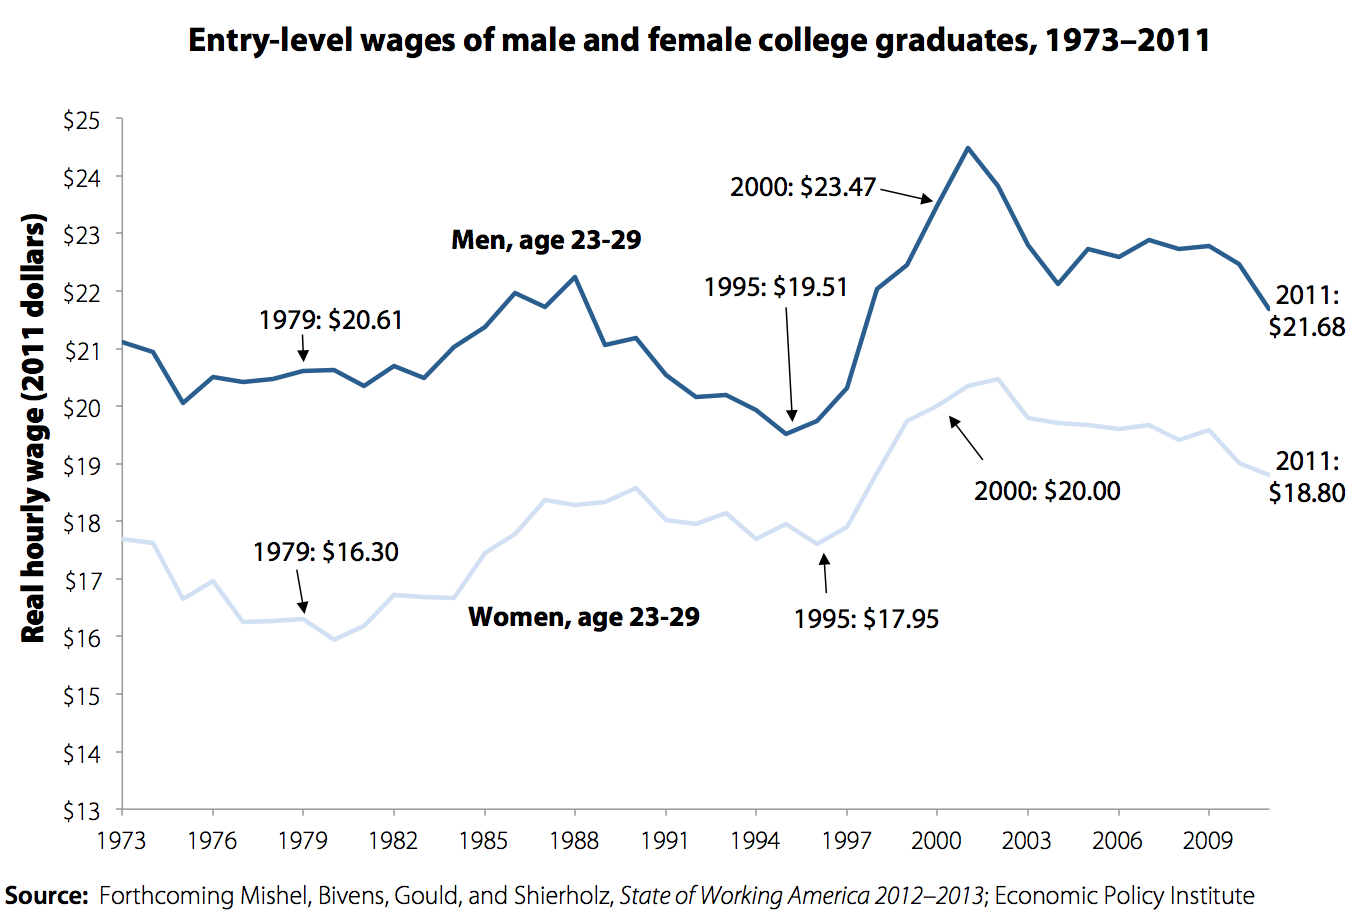 Entry-level wages of male and female college graduates